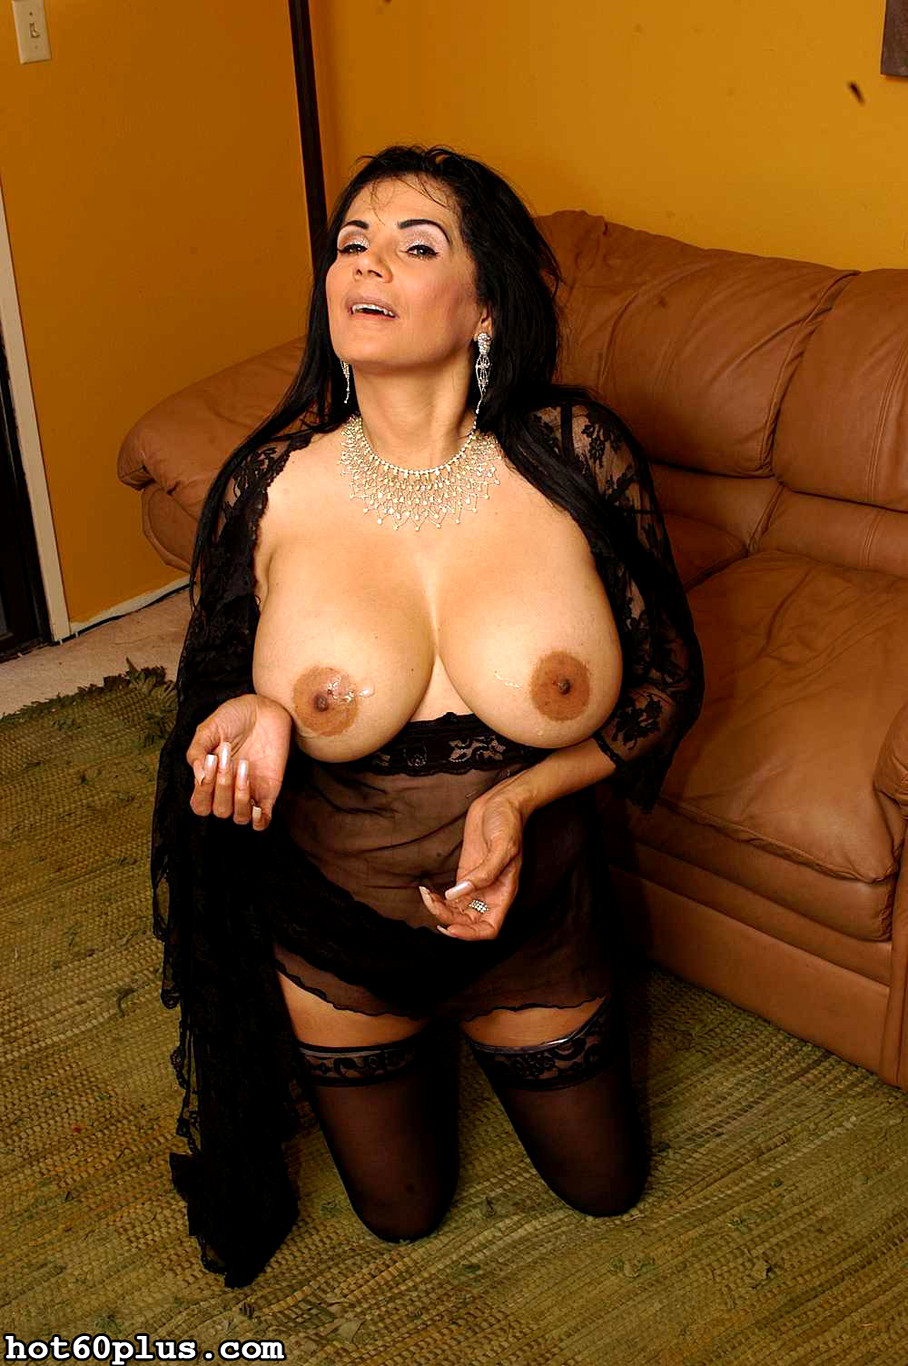 Brazzers jewels jade my friends mom blindfolded